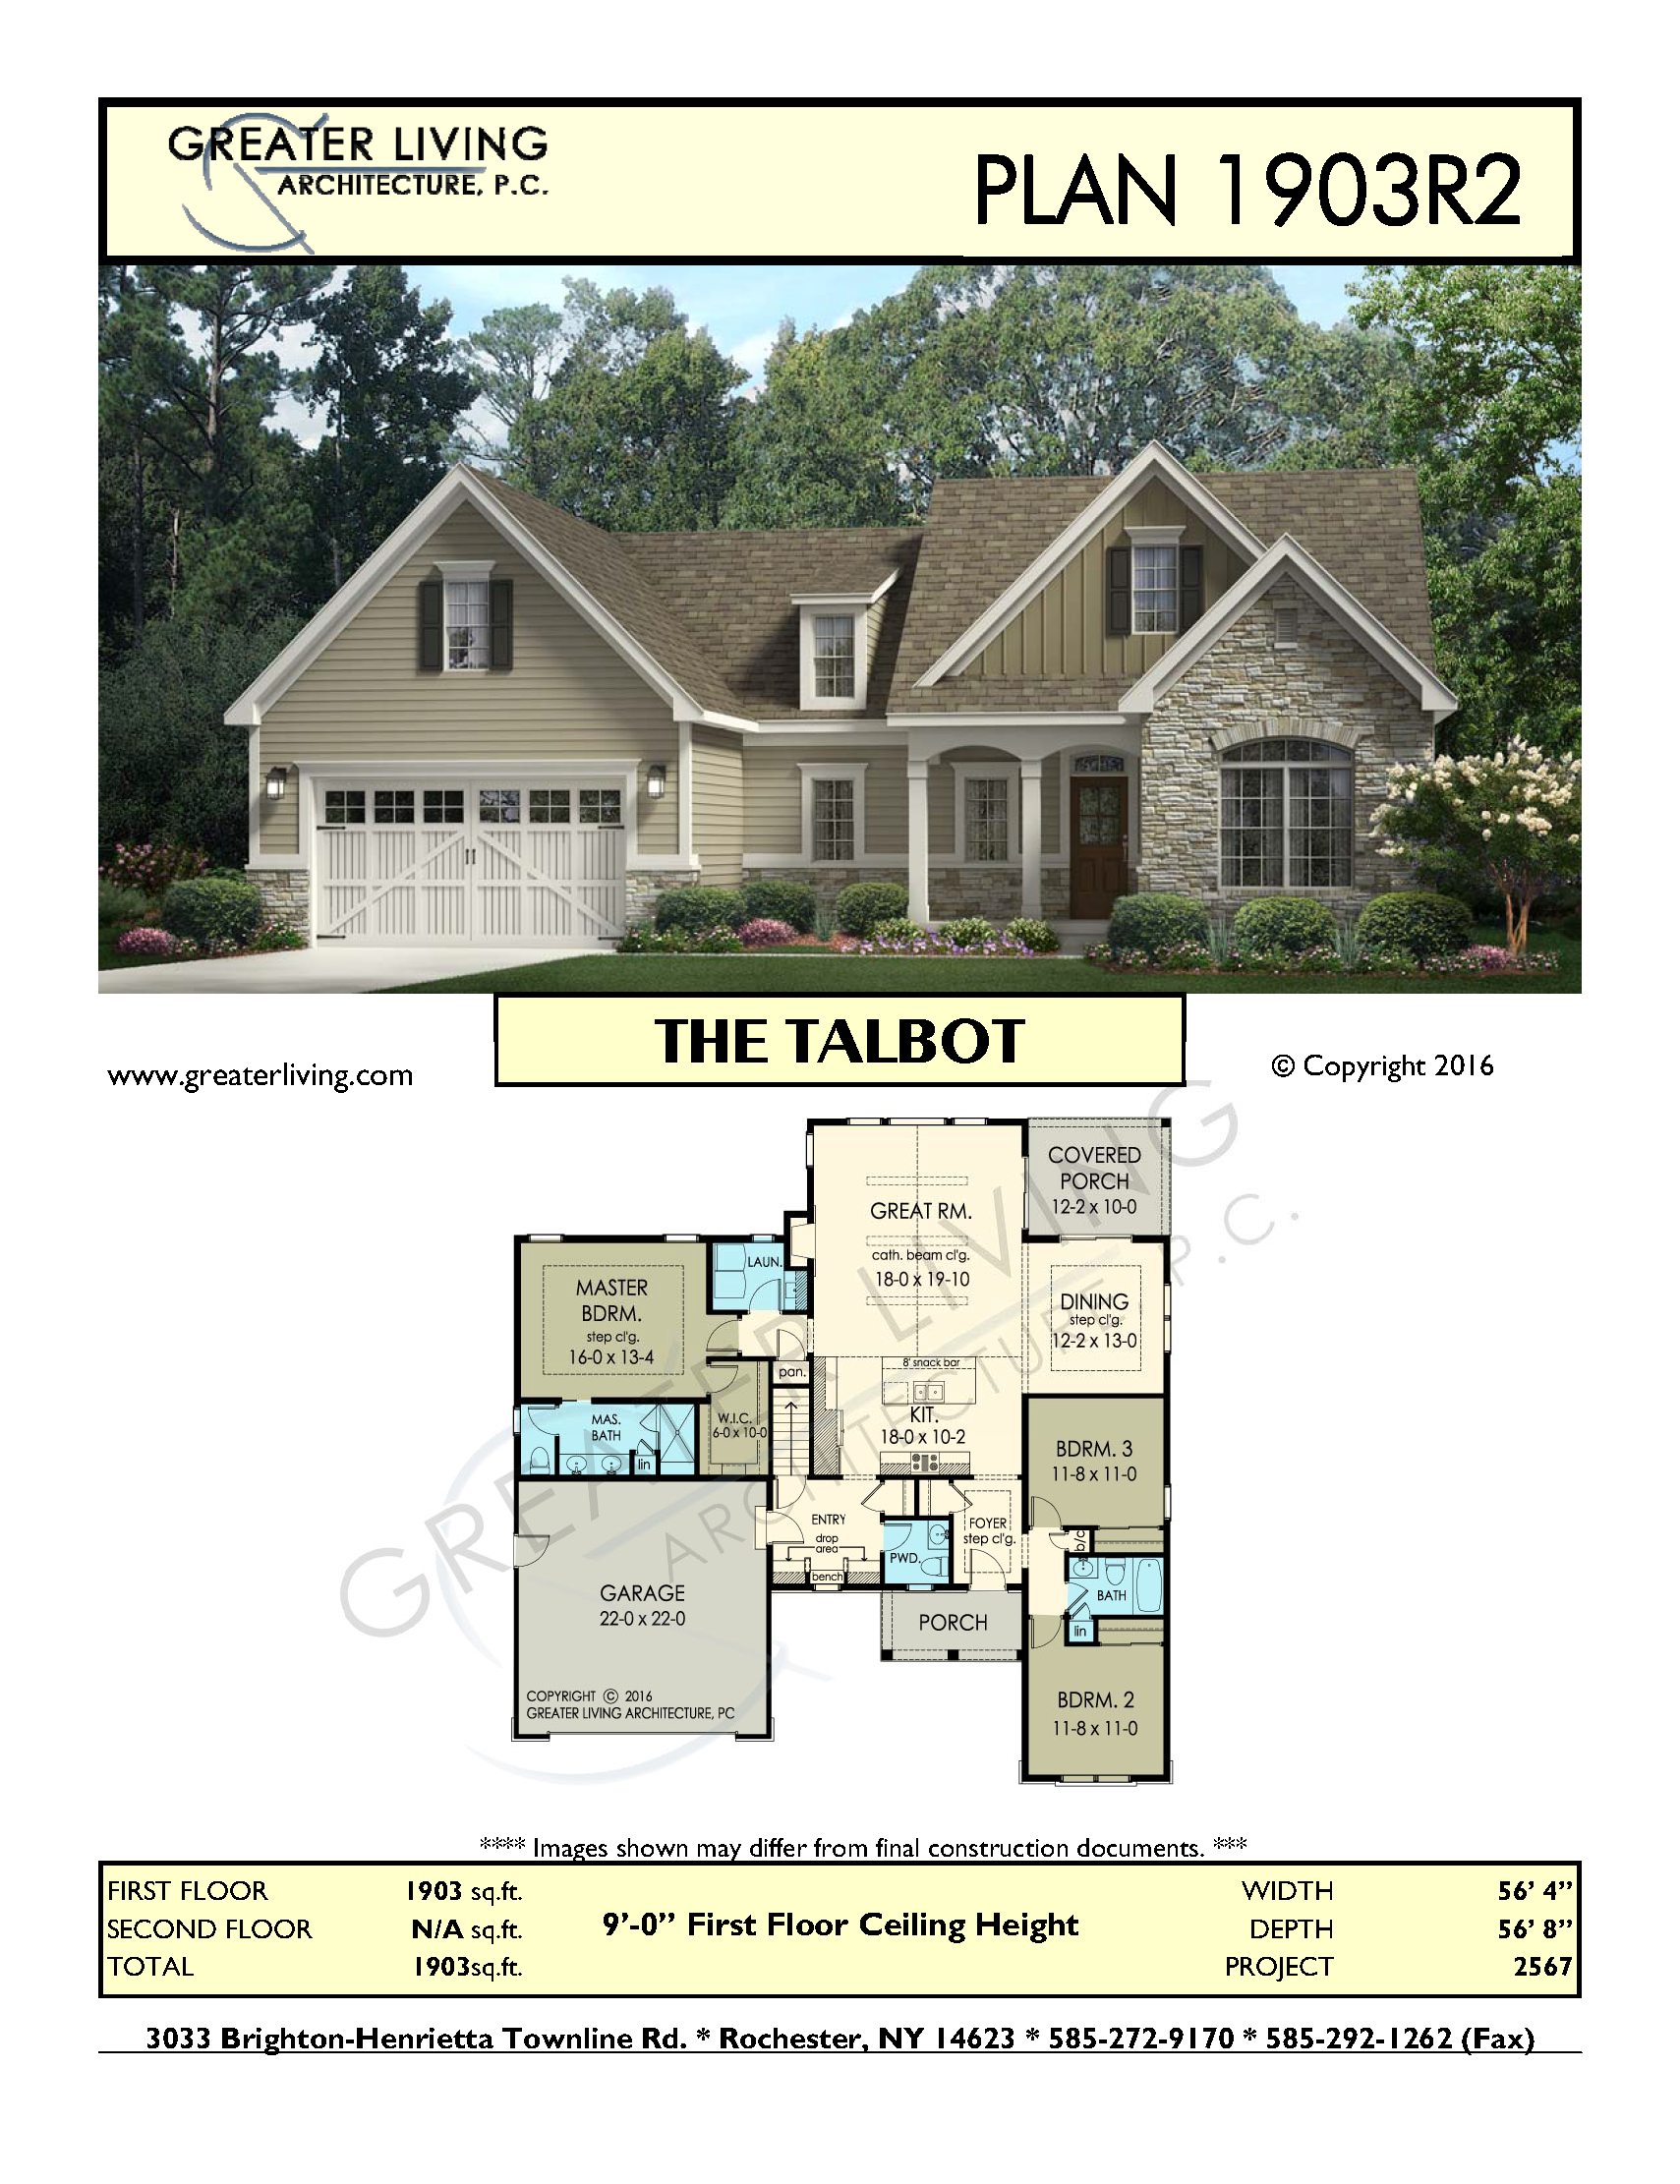 Plan 1903R2: THE TALBOT   Ranch House Plan   Greater Living Architecture    Residential Architecture